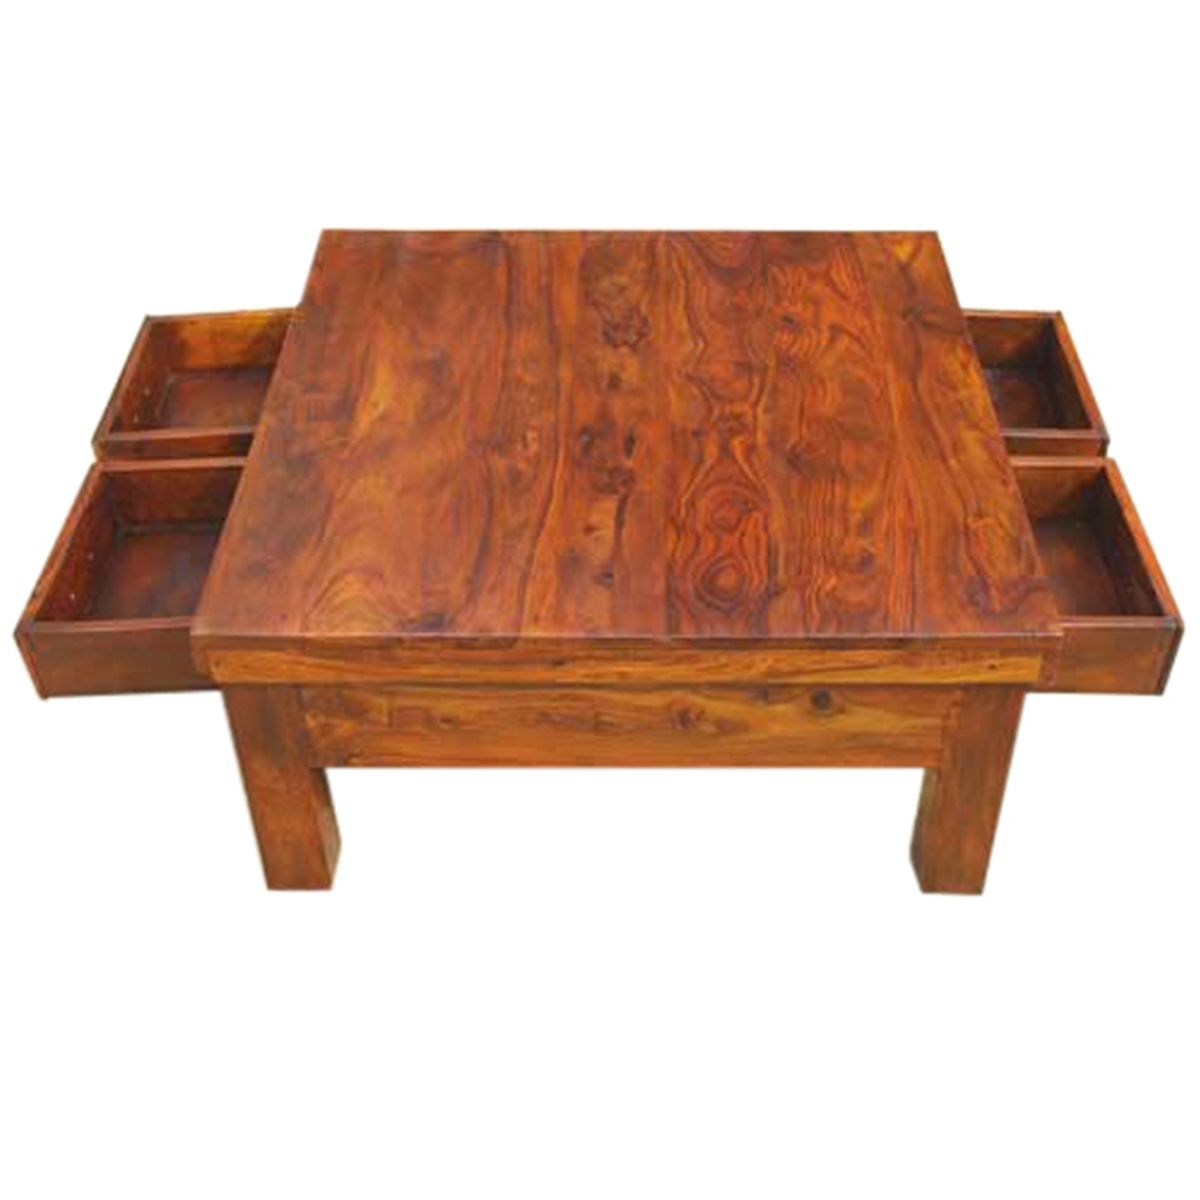 Clic Solid Wood 4 Drawers Square Storage Coffee Table